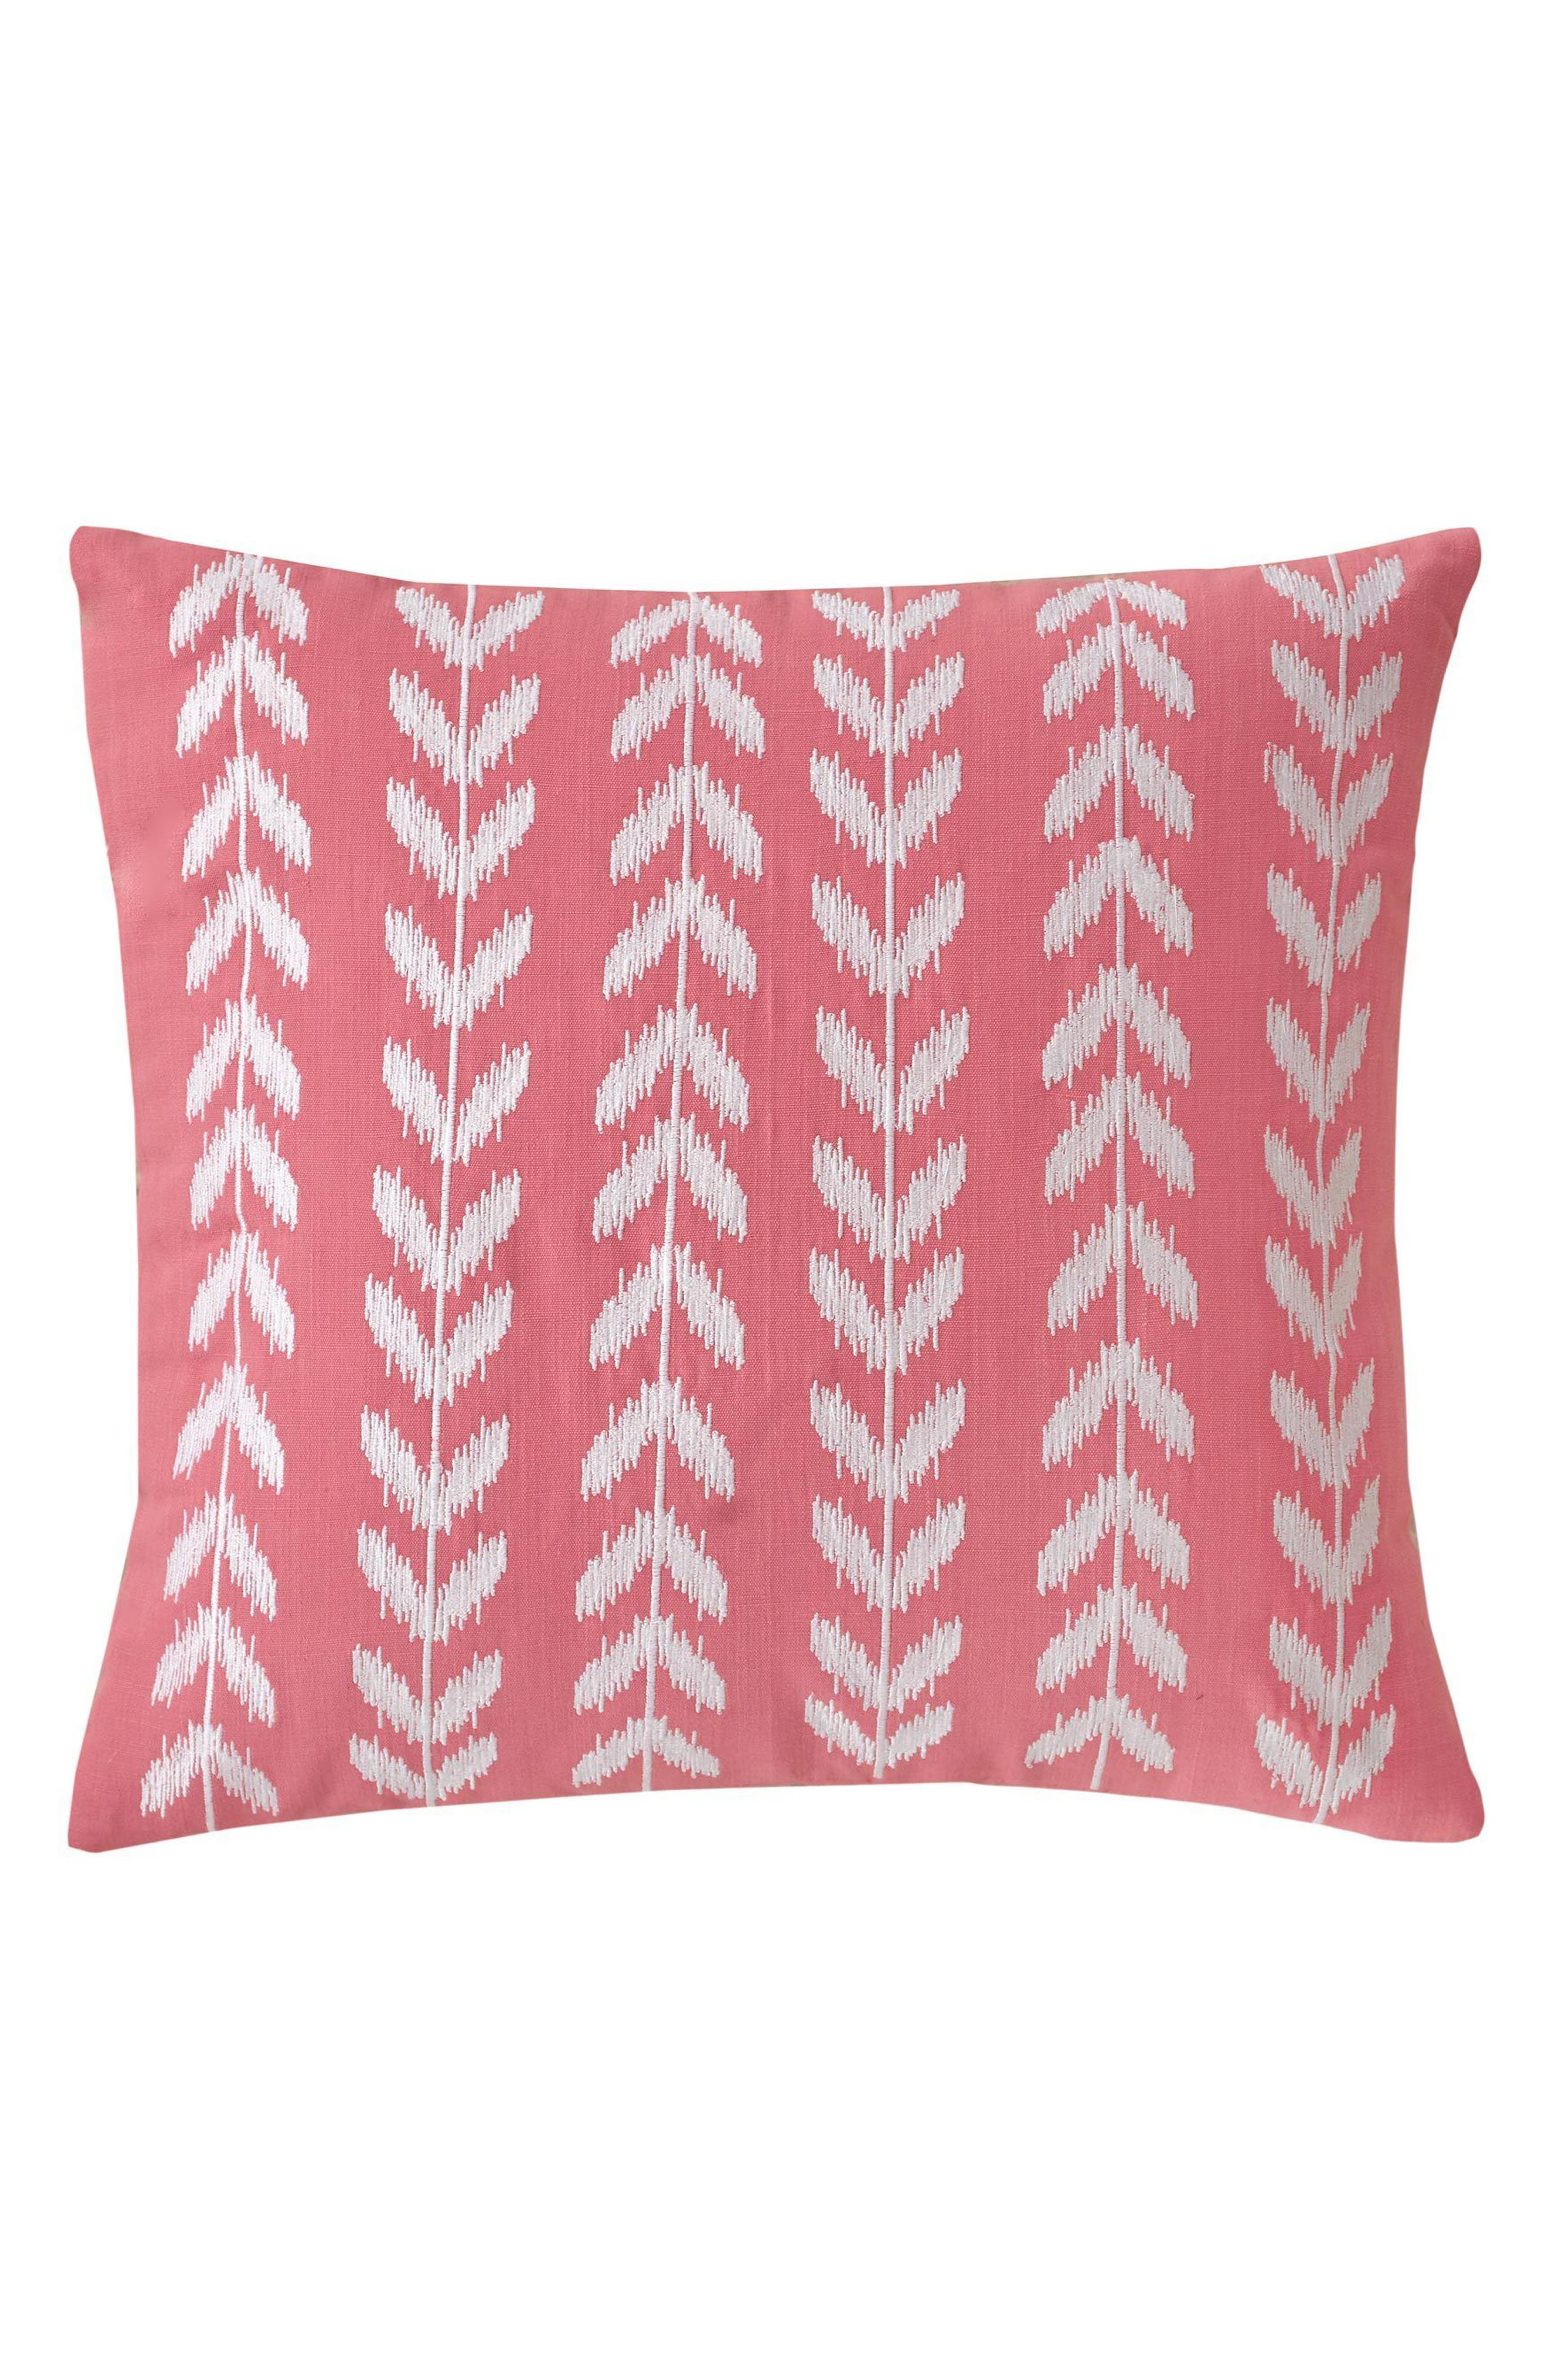 Main Image - Southern Tide Coastal Ikat Heart Deco Accent Pillow